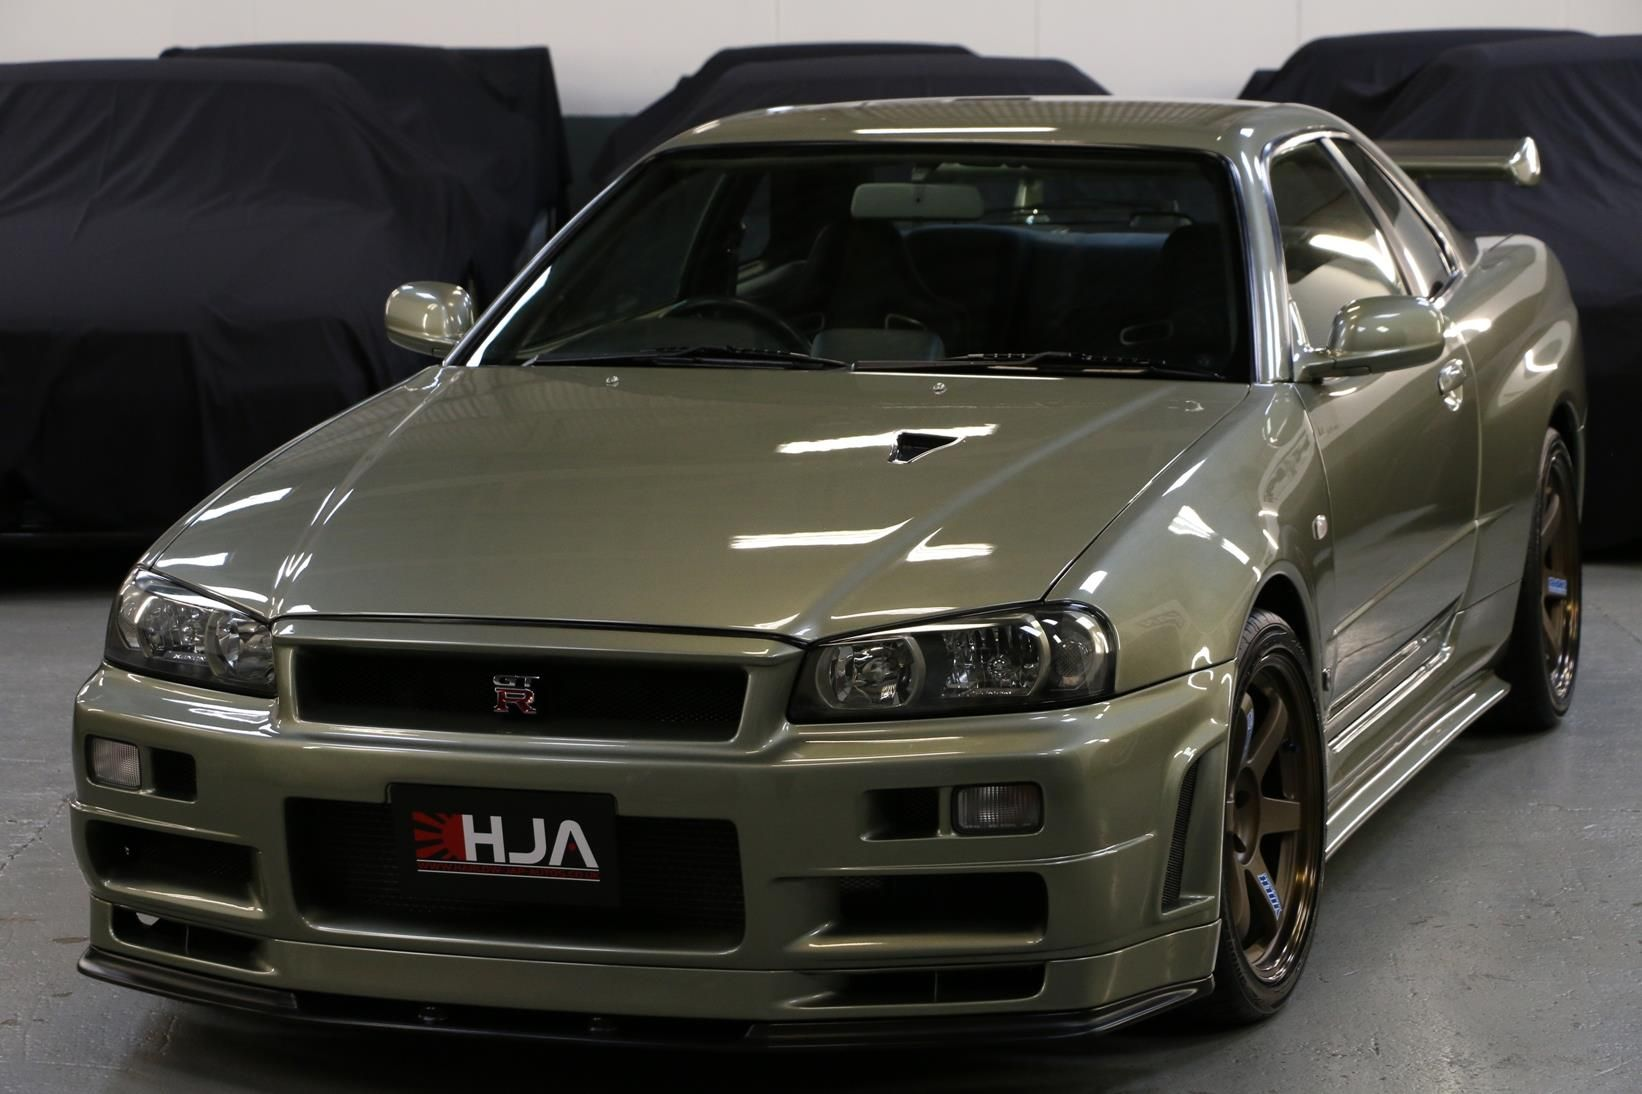 Used 2002 Nissan Skyline R34 For Sale In Essex Pistonheads Nissan Skyline Nissan Gtr R34